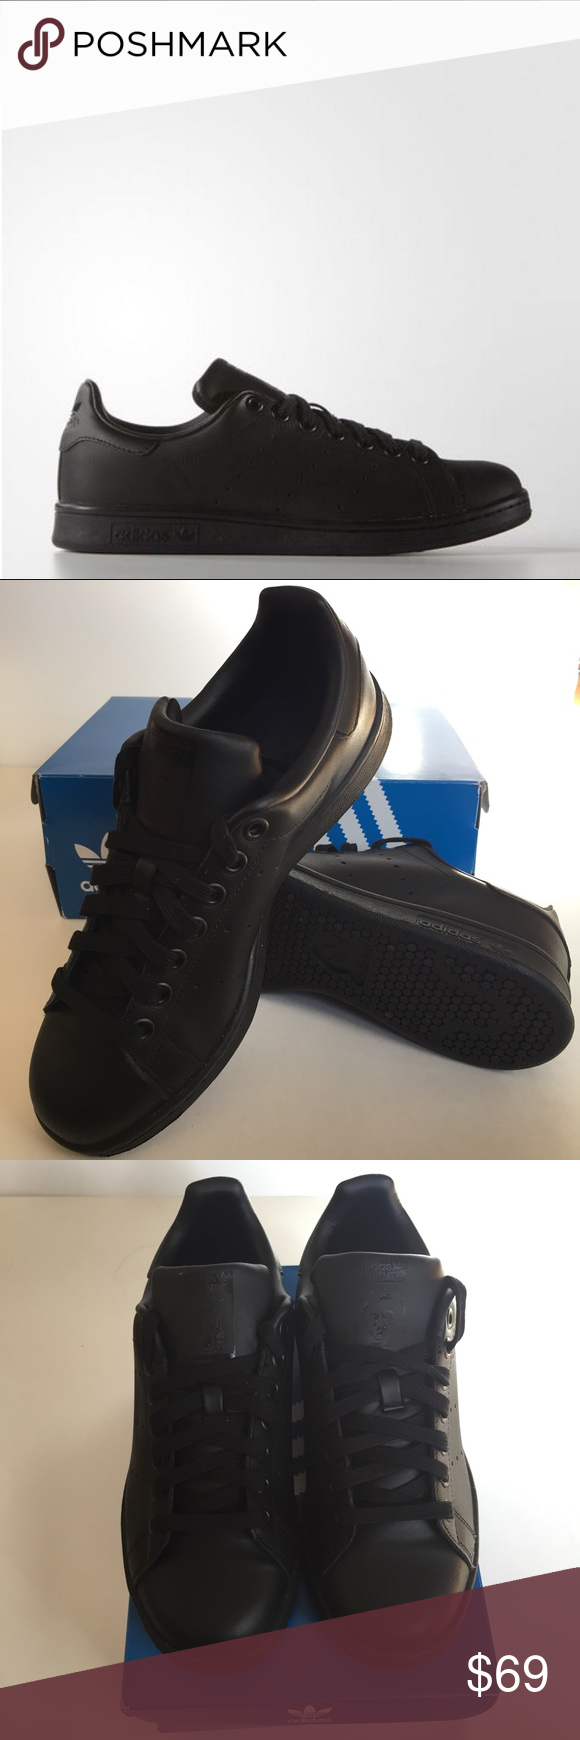 170b7182168 Adidas All Black Stan Smiths M20327 Sz 6.5 (~39.3) Brand New with Tags.  Smooth look. Full grain leather upper with perforated 3 stripes and tonal  upper ...